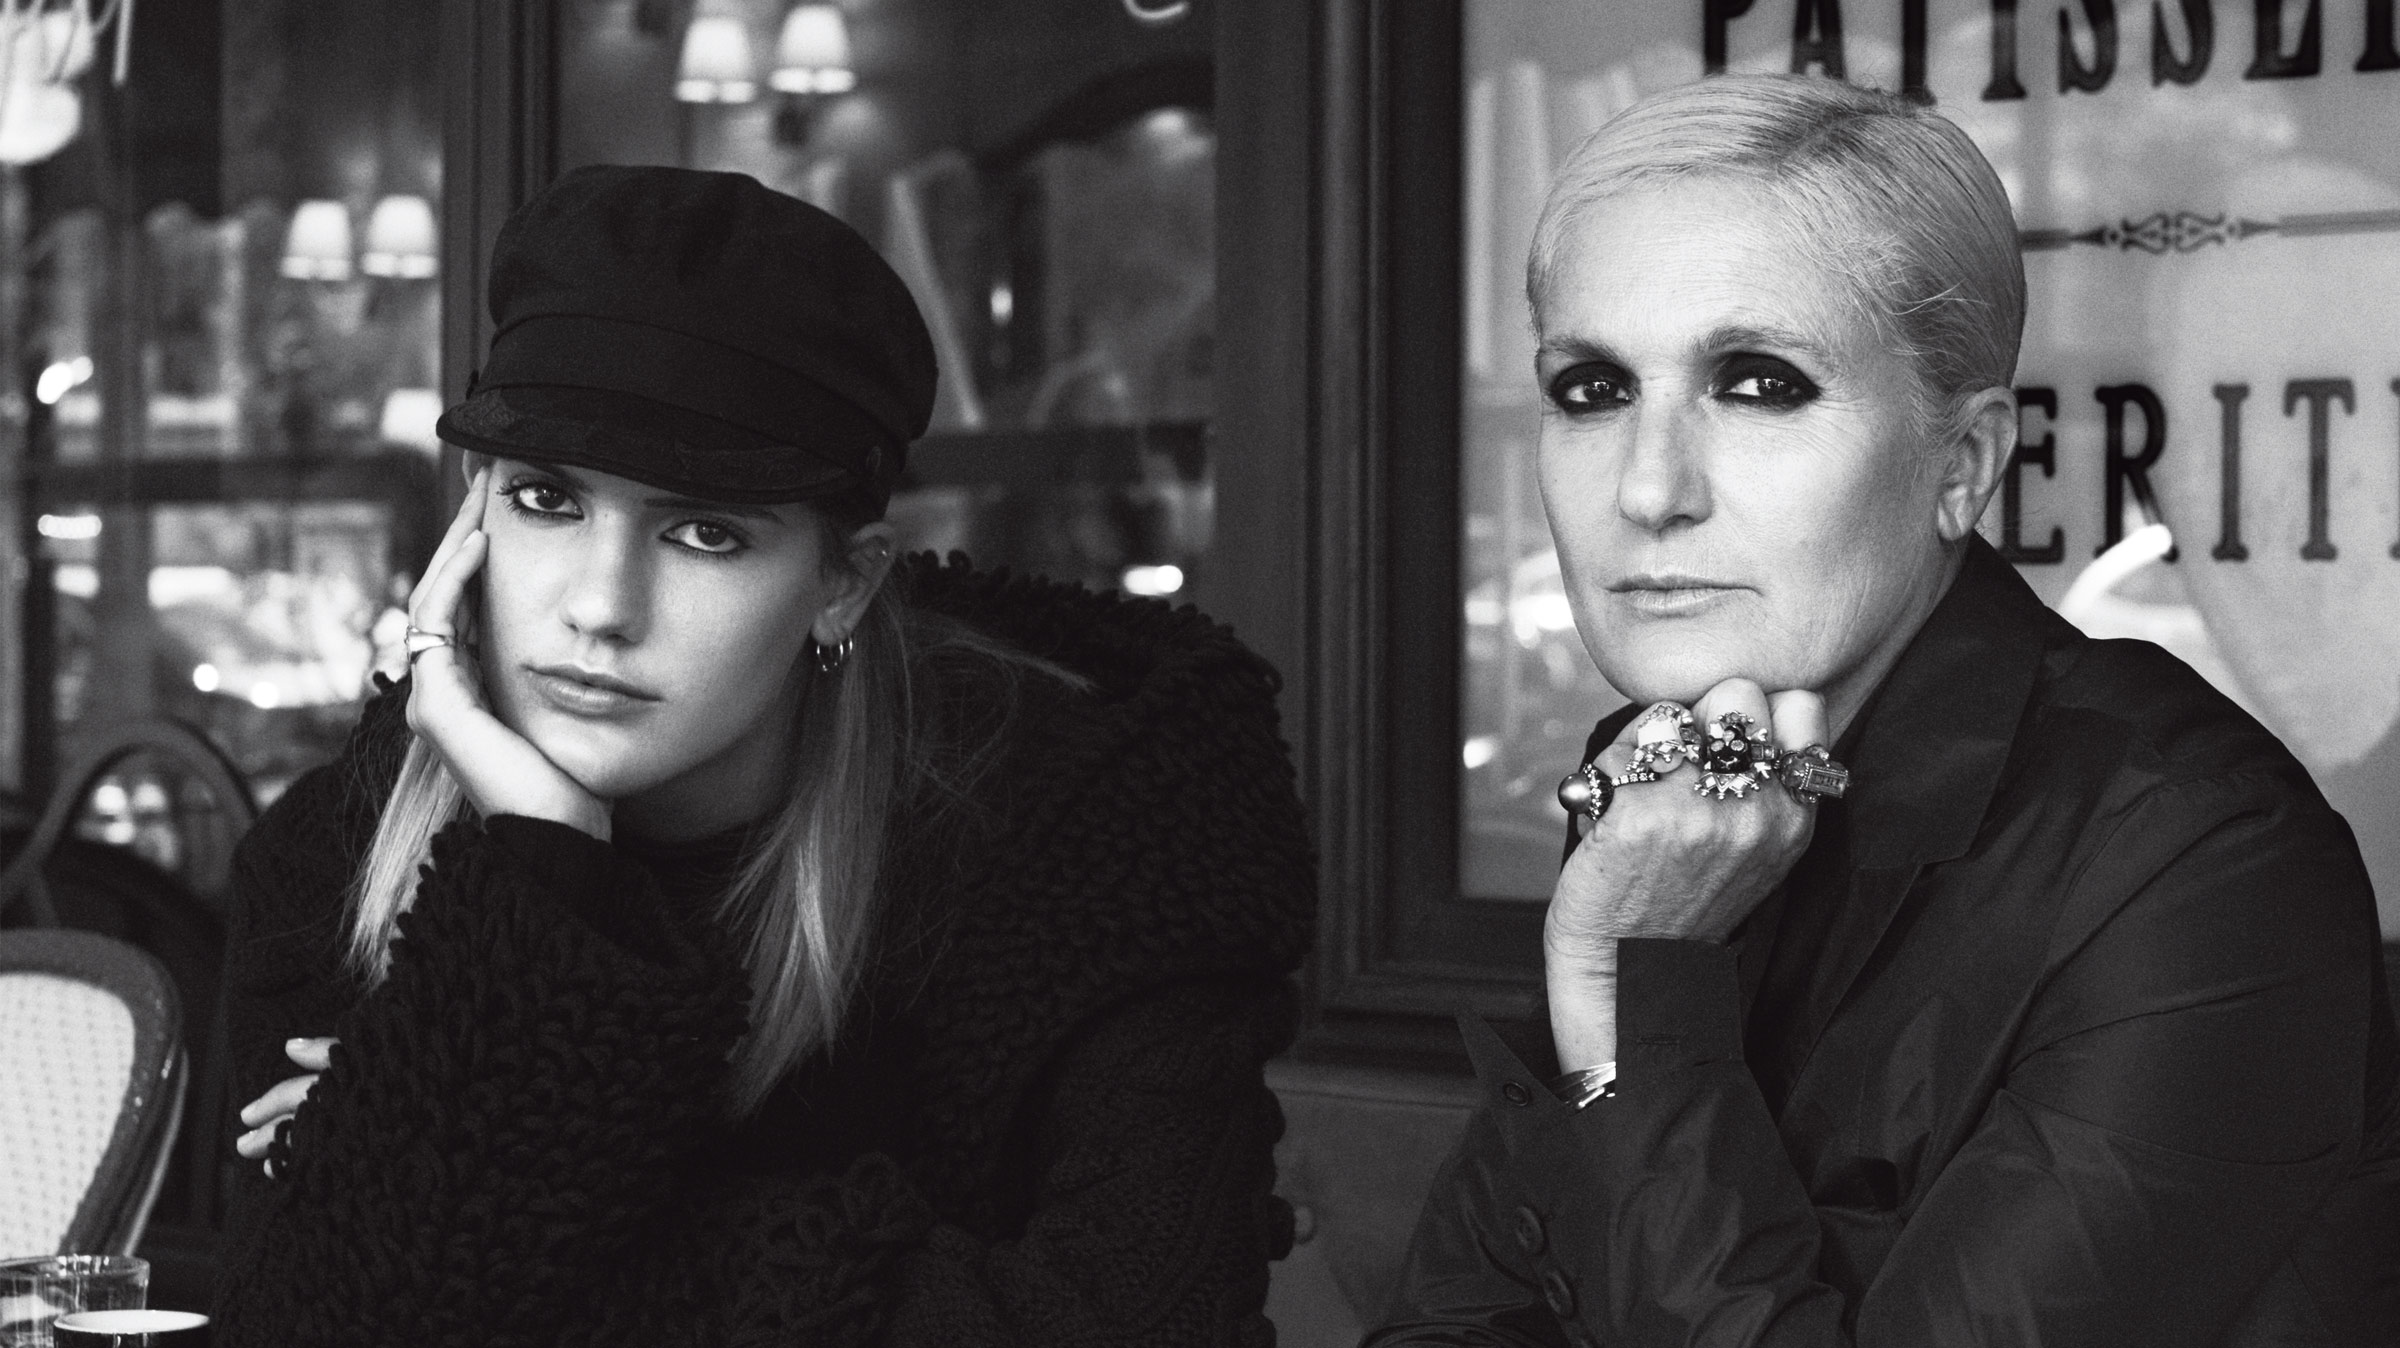 Maria Grazia Chiuri on her feminist vision for Dior